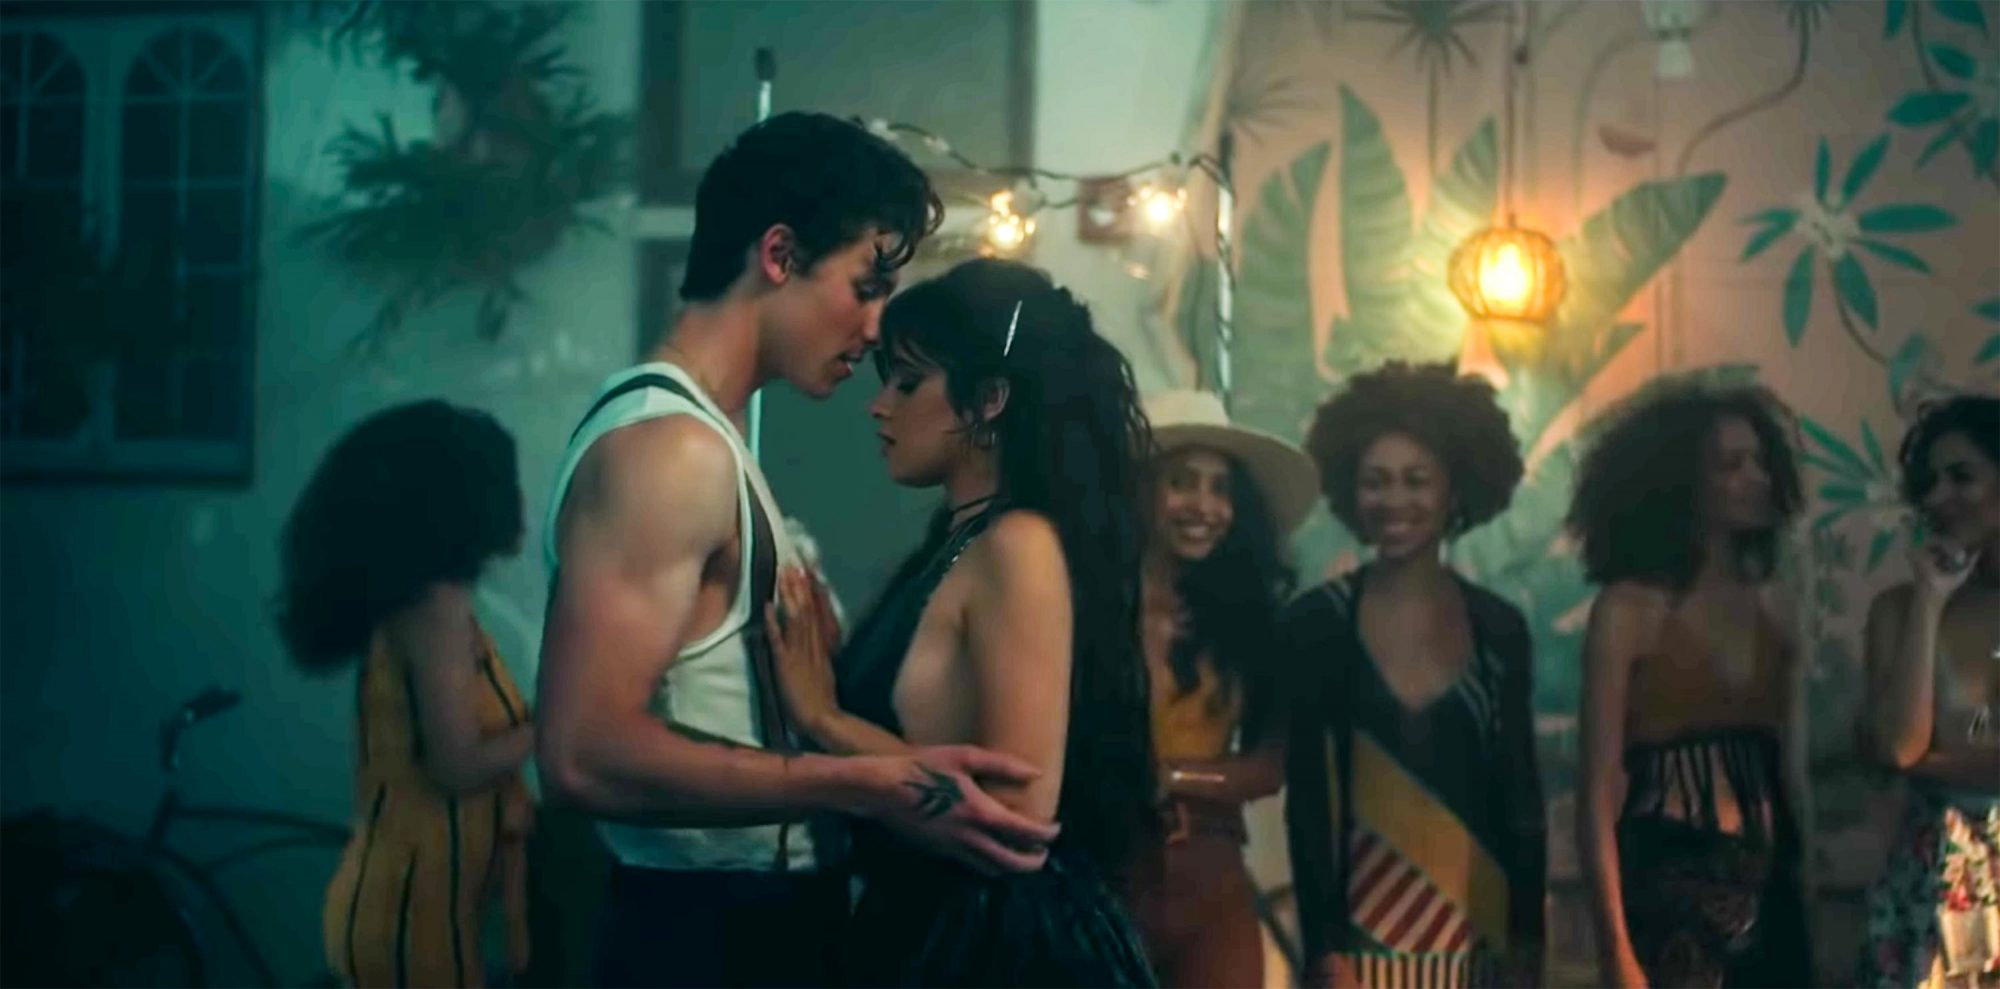 Señorita screen grab